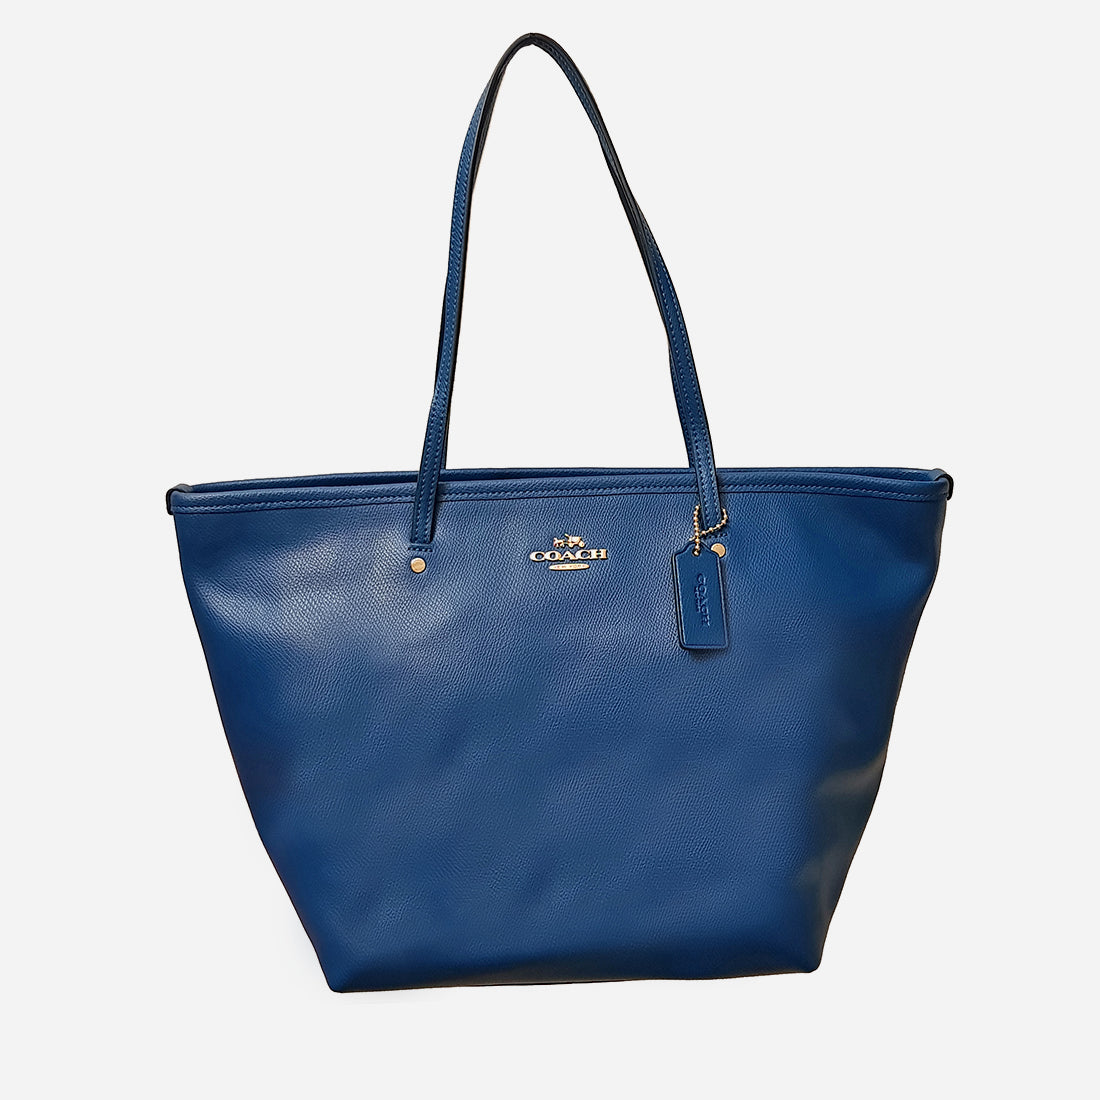 Coach Leather Large  Tote Bag